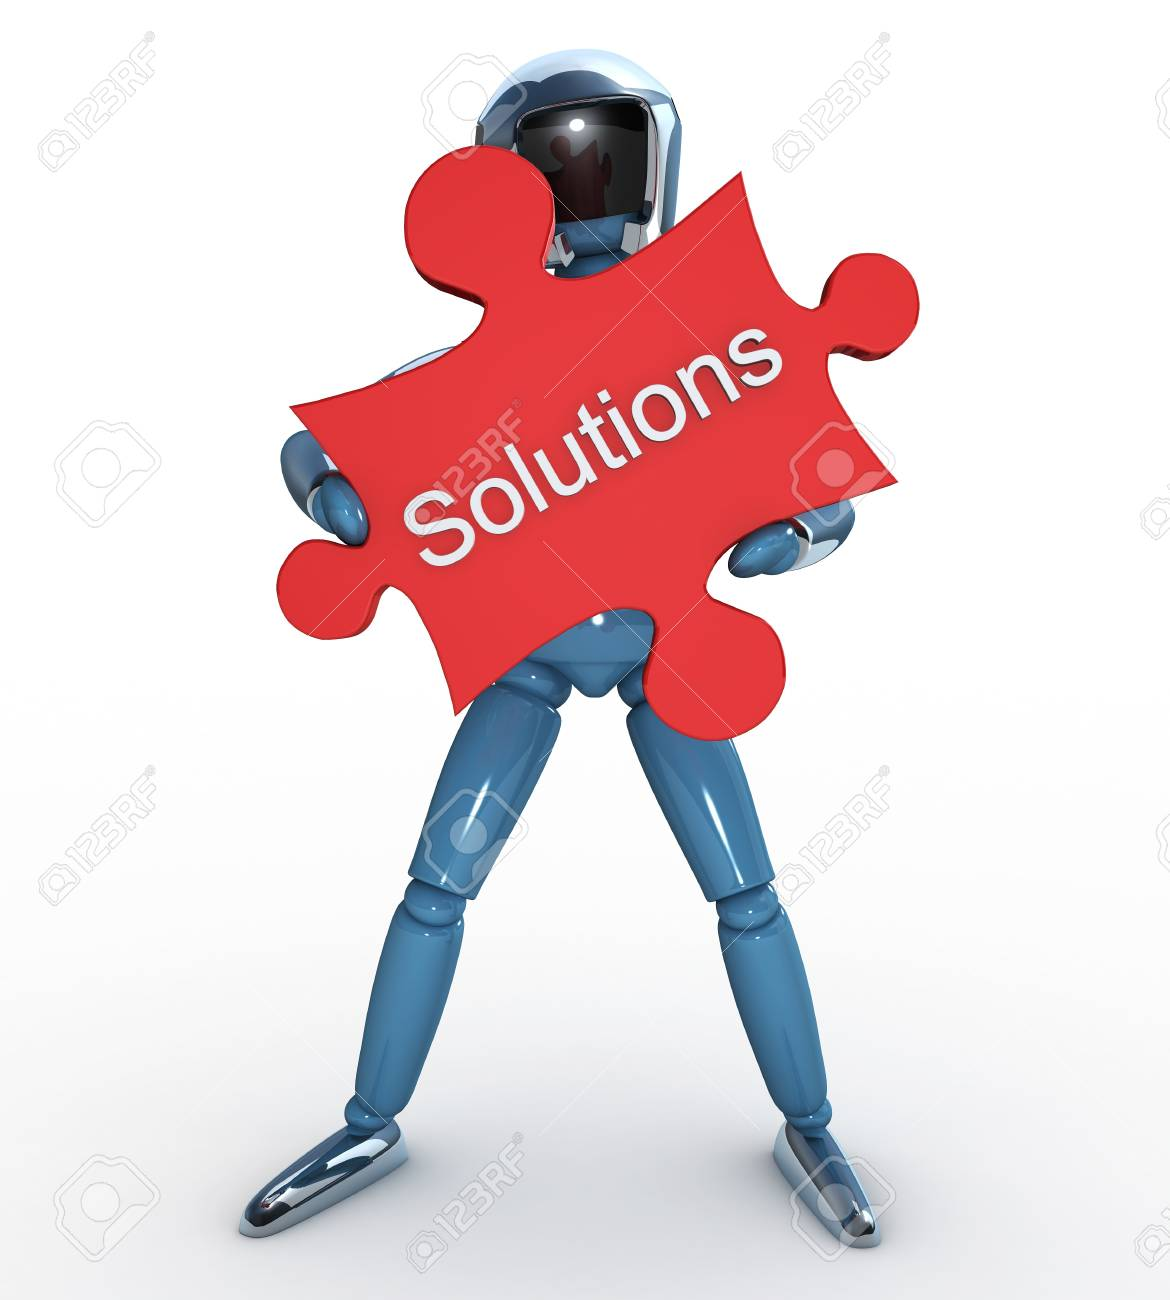 Robot Puzzle Solutions Stock Photo - 12470003